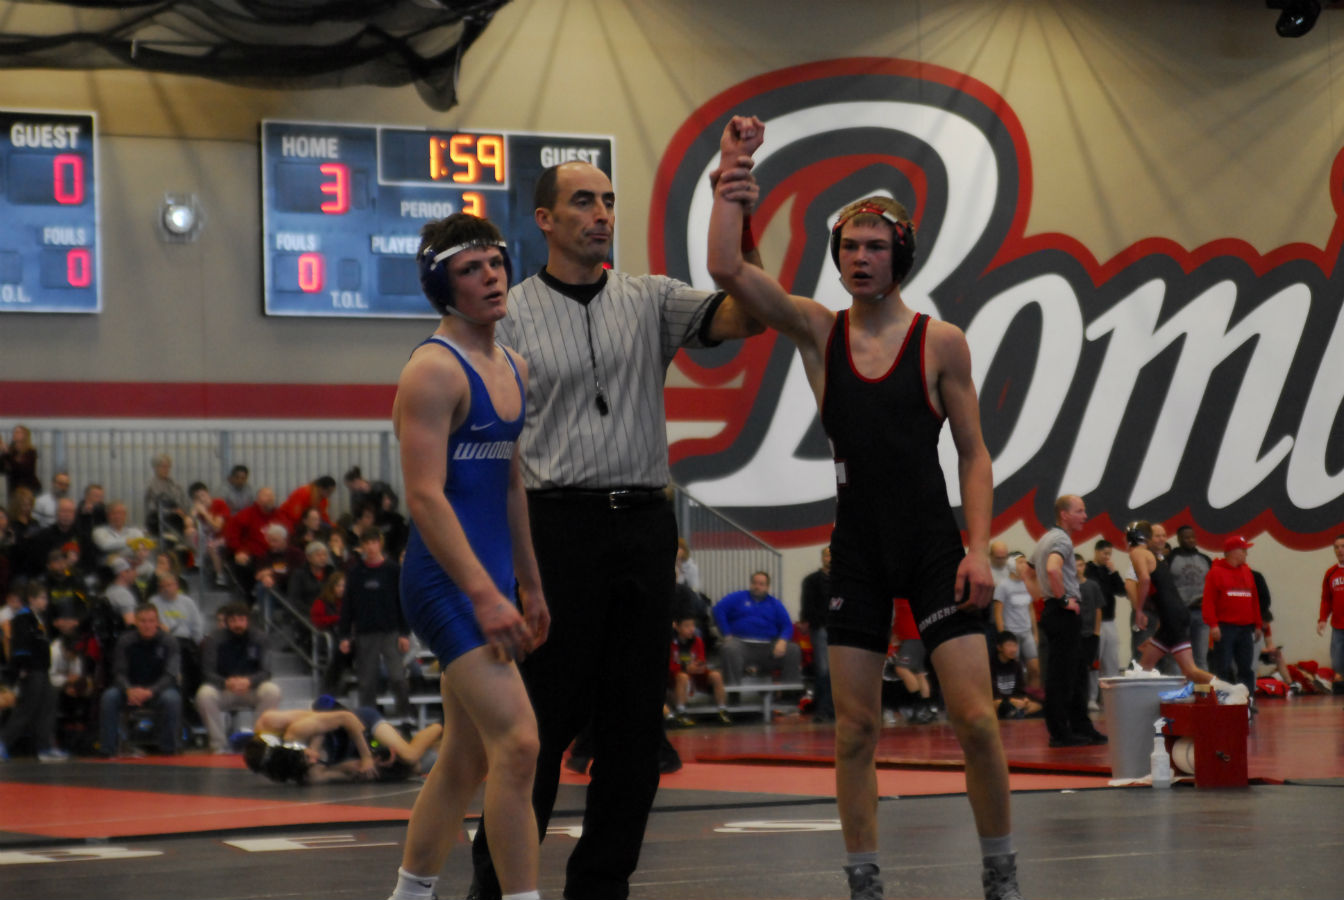 Cooper Peterson wins his match.